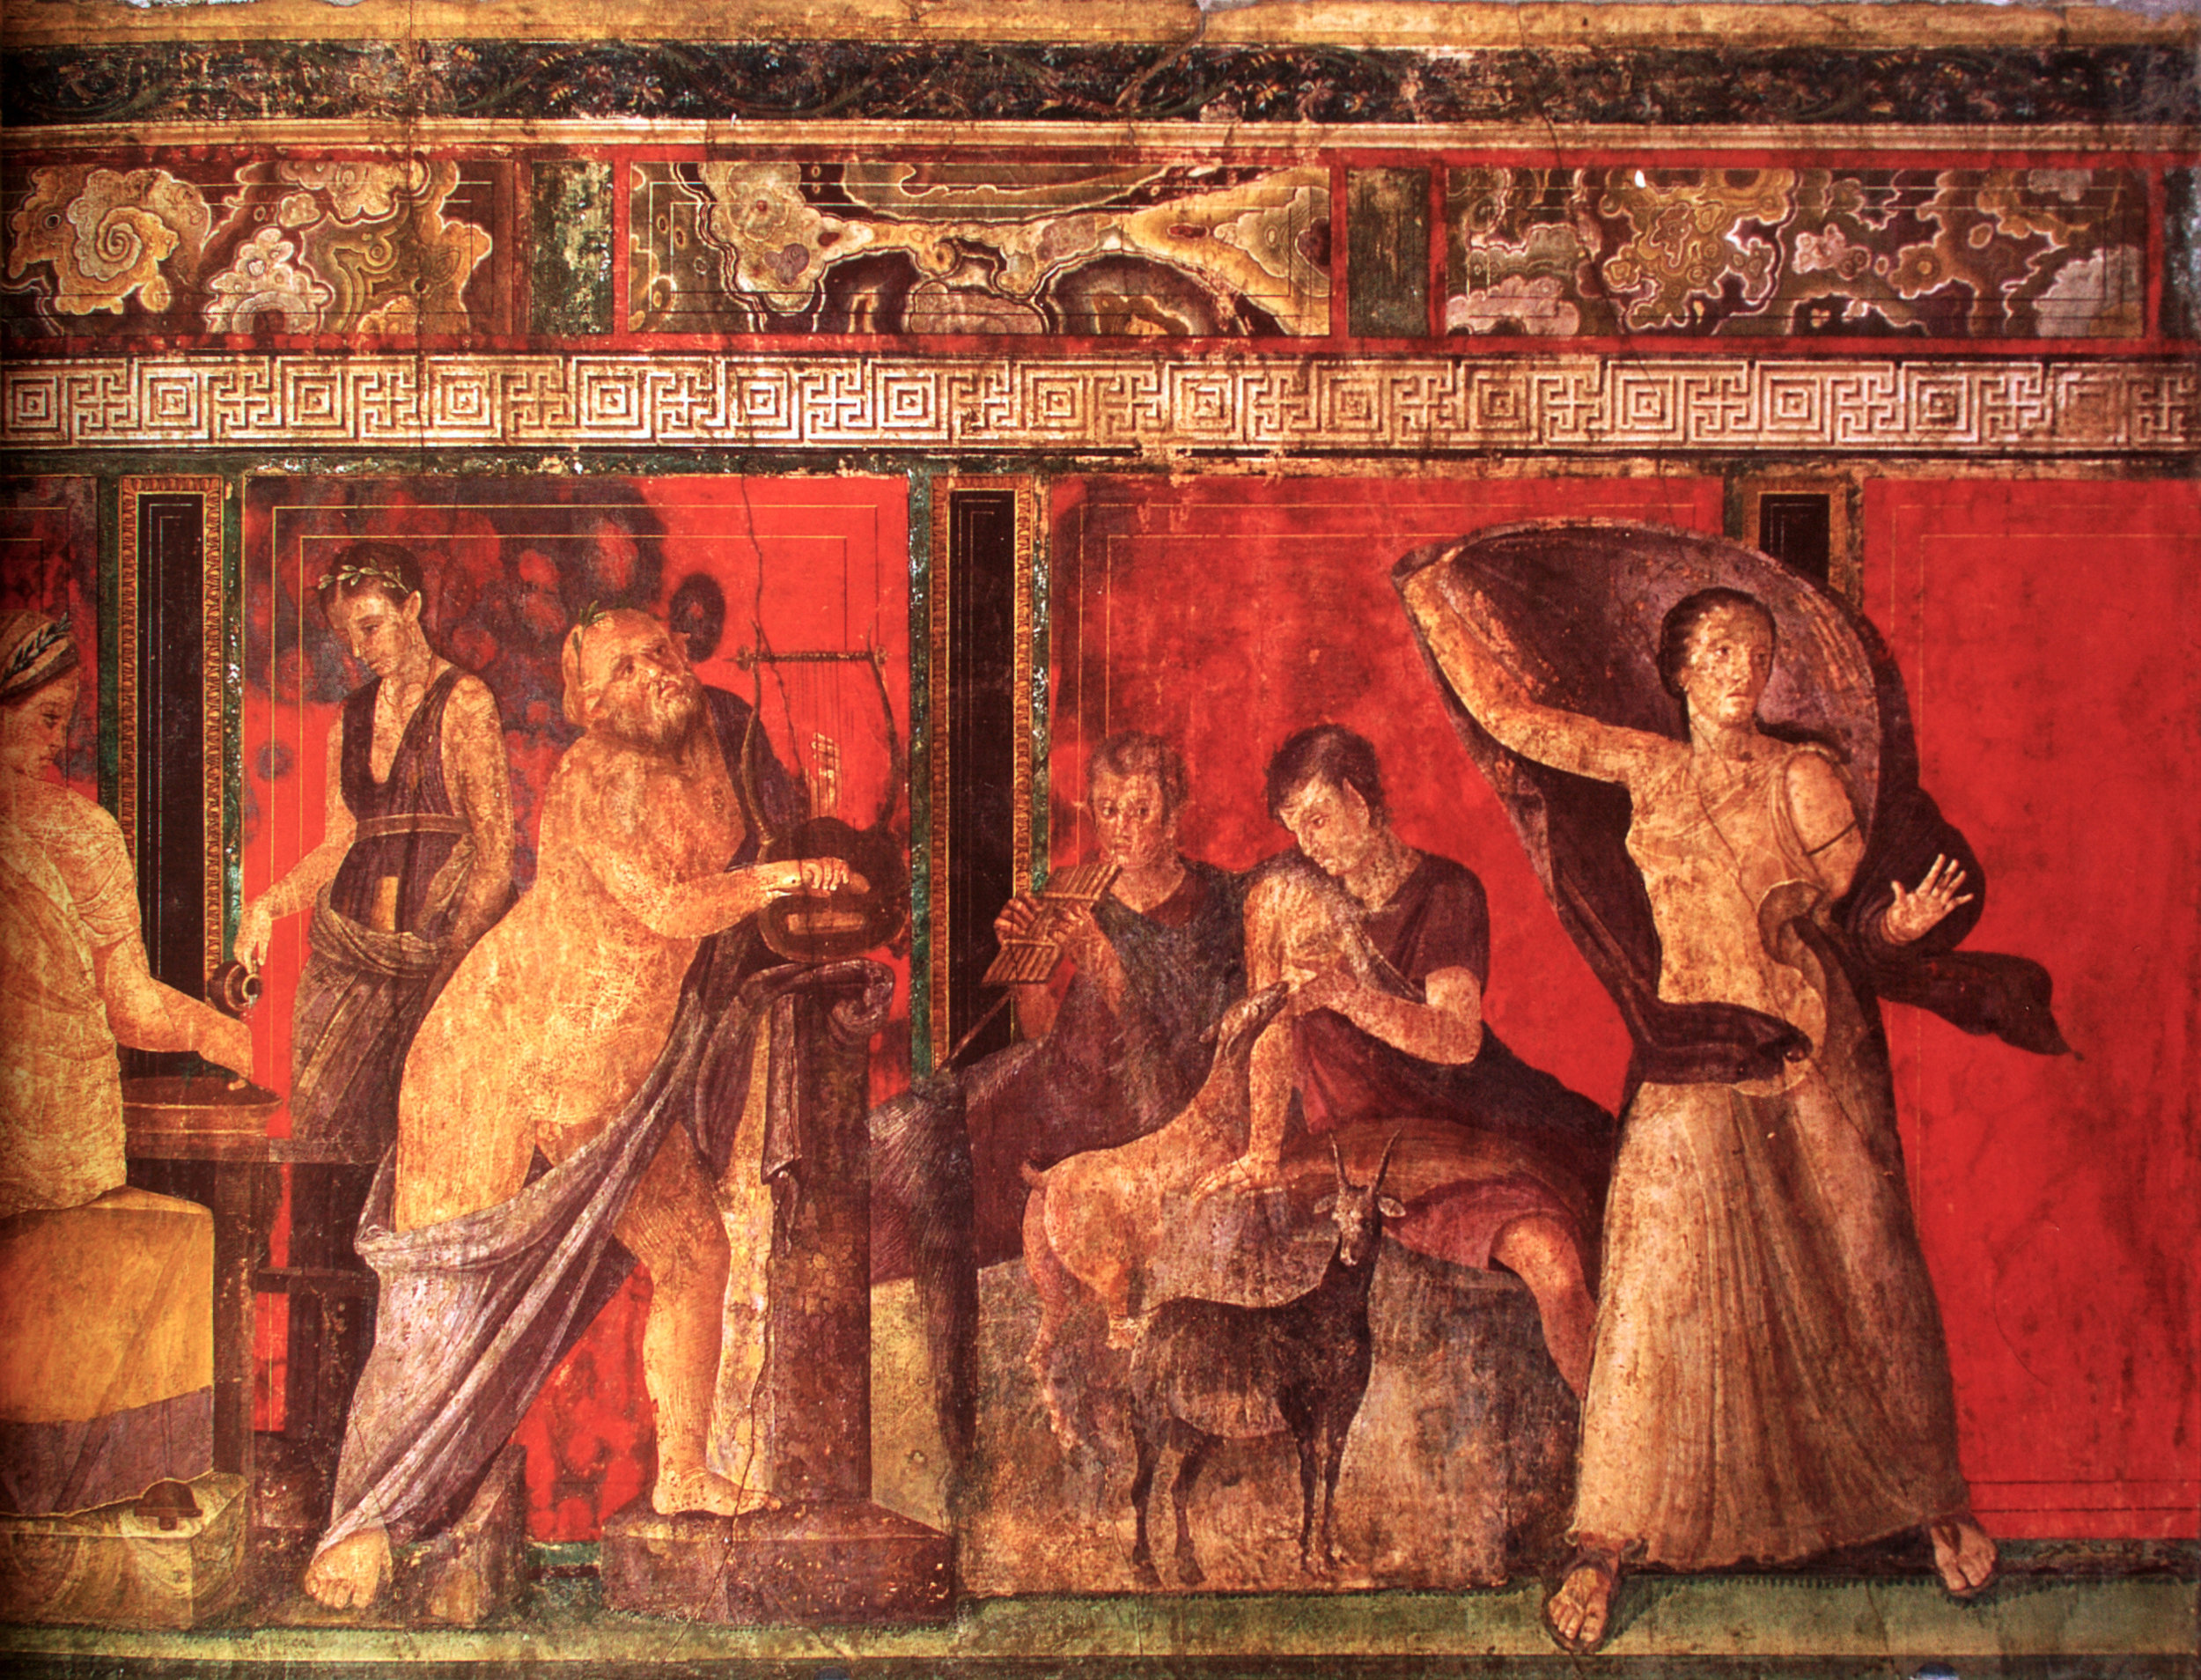 Cult Ritual + marriage ceremony = a surefire good time. - A fresco of a mystery ritual related to Dionysus from the Villa of the Mysteries, Pompeii, Italy. Wikicommons